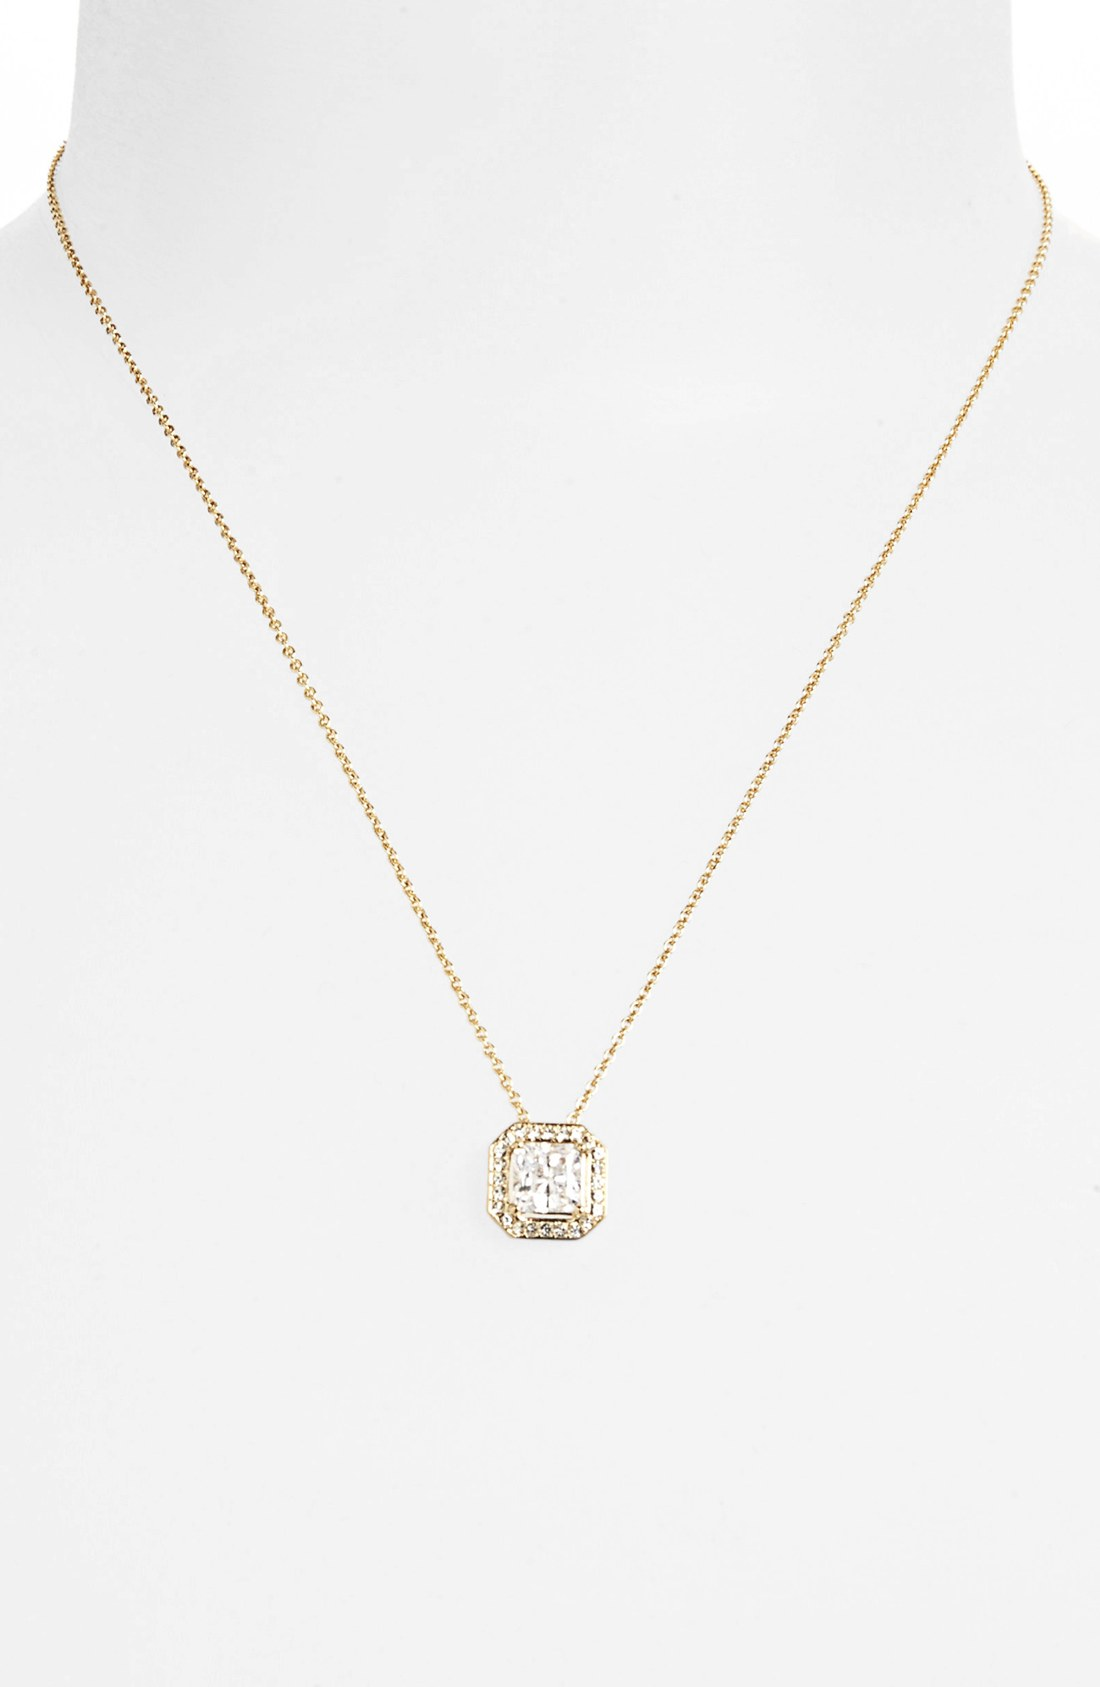 nadri boxed framed square pendant necklace in gold gold